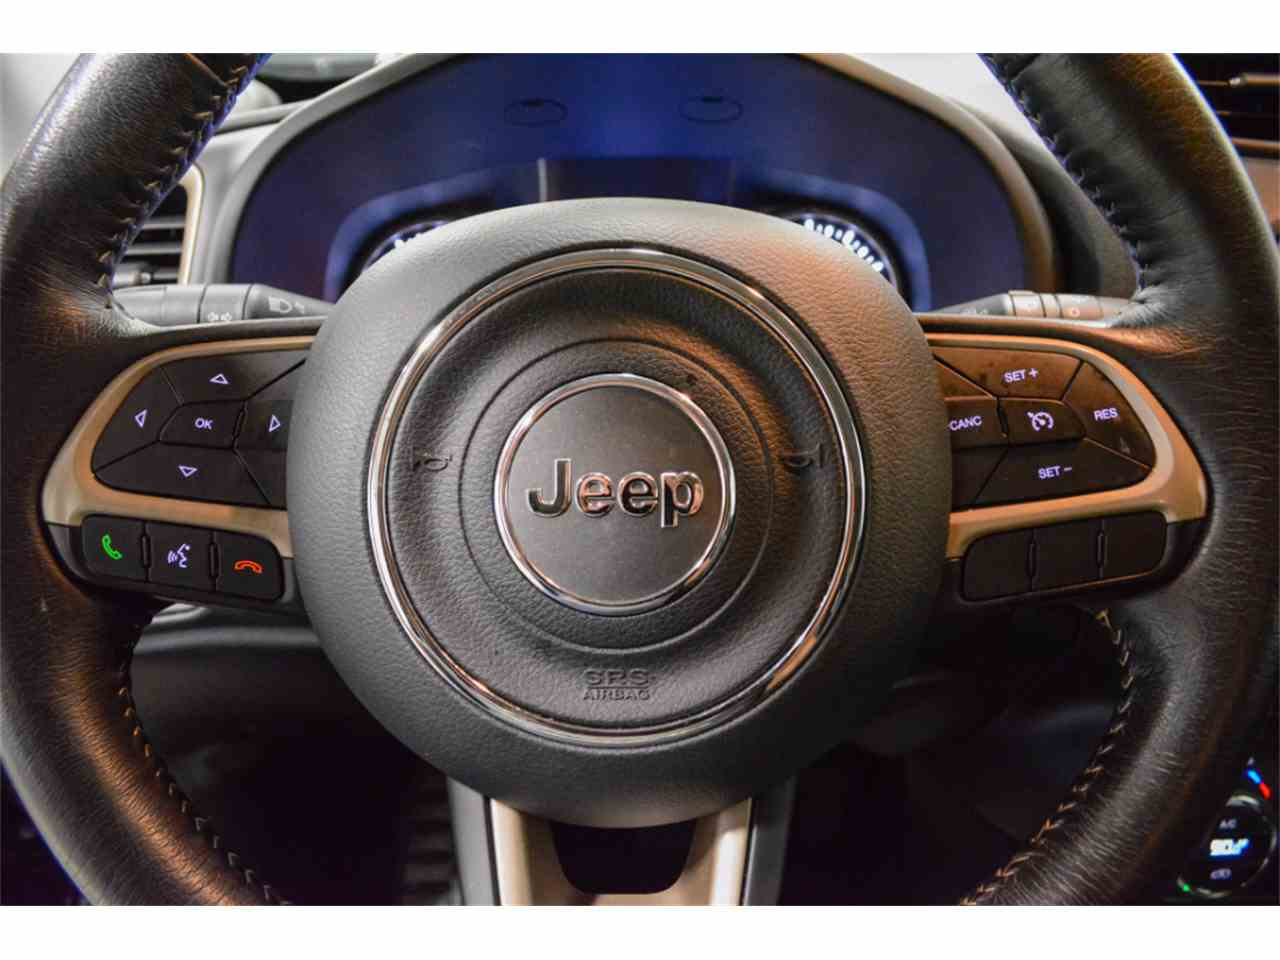 Large Picture of '16 Jeep Wrangler - $22,988.00 - M9AL